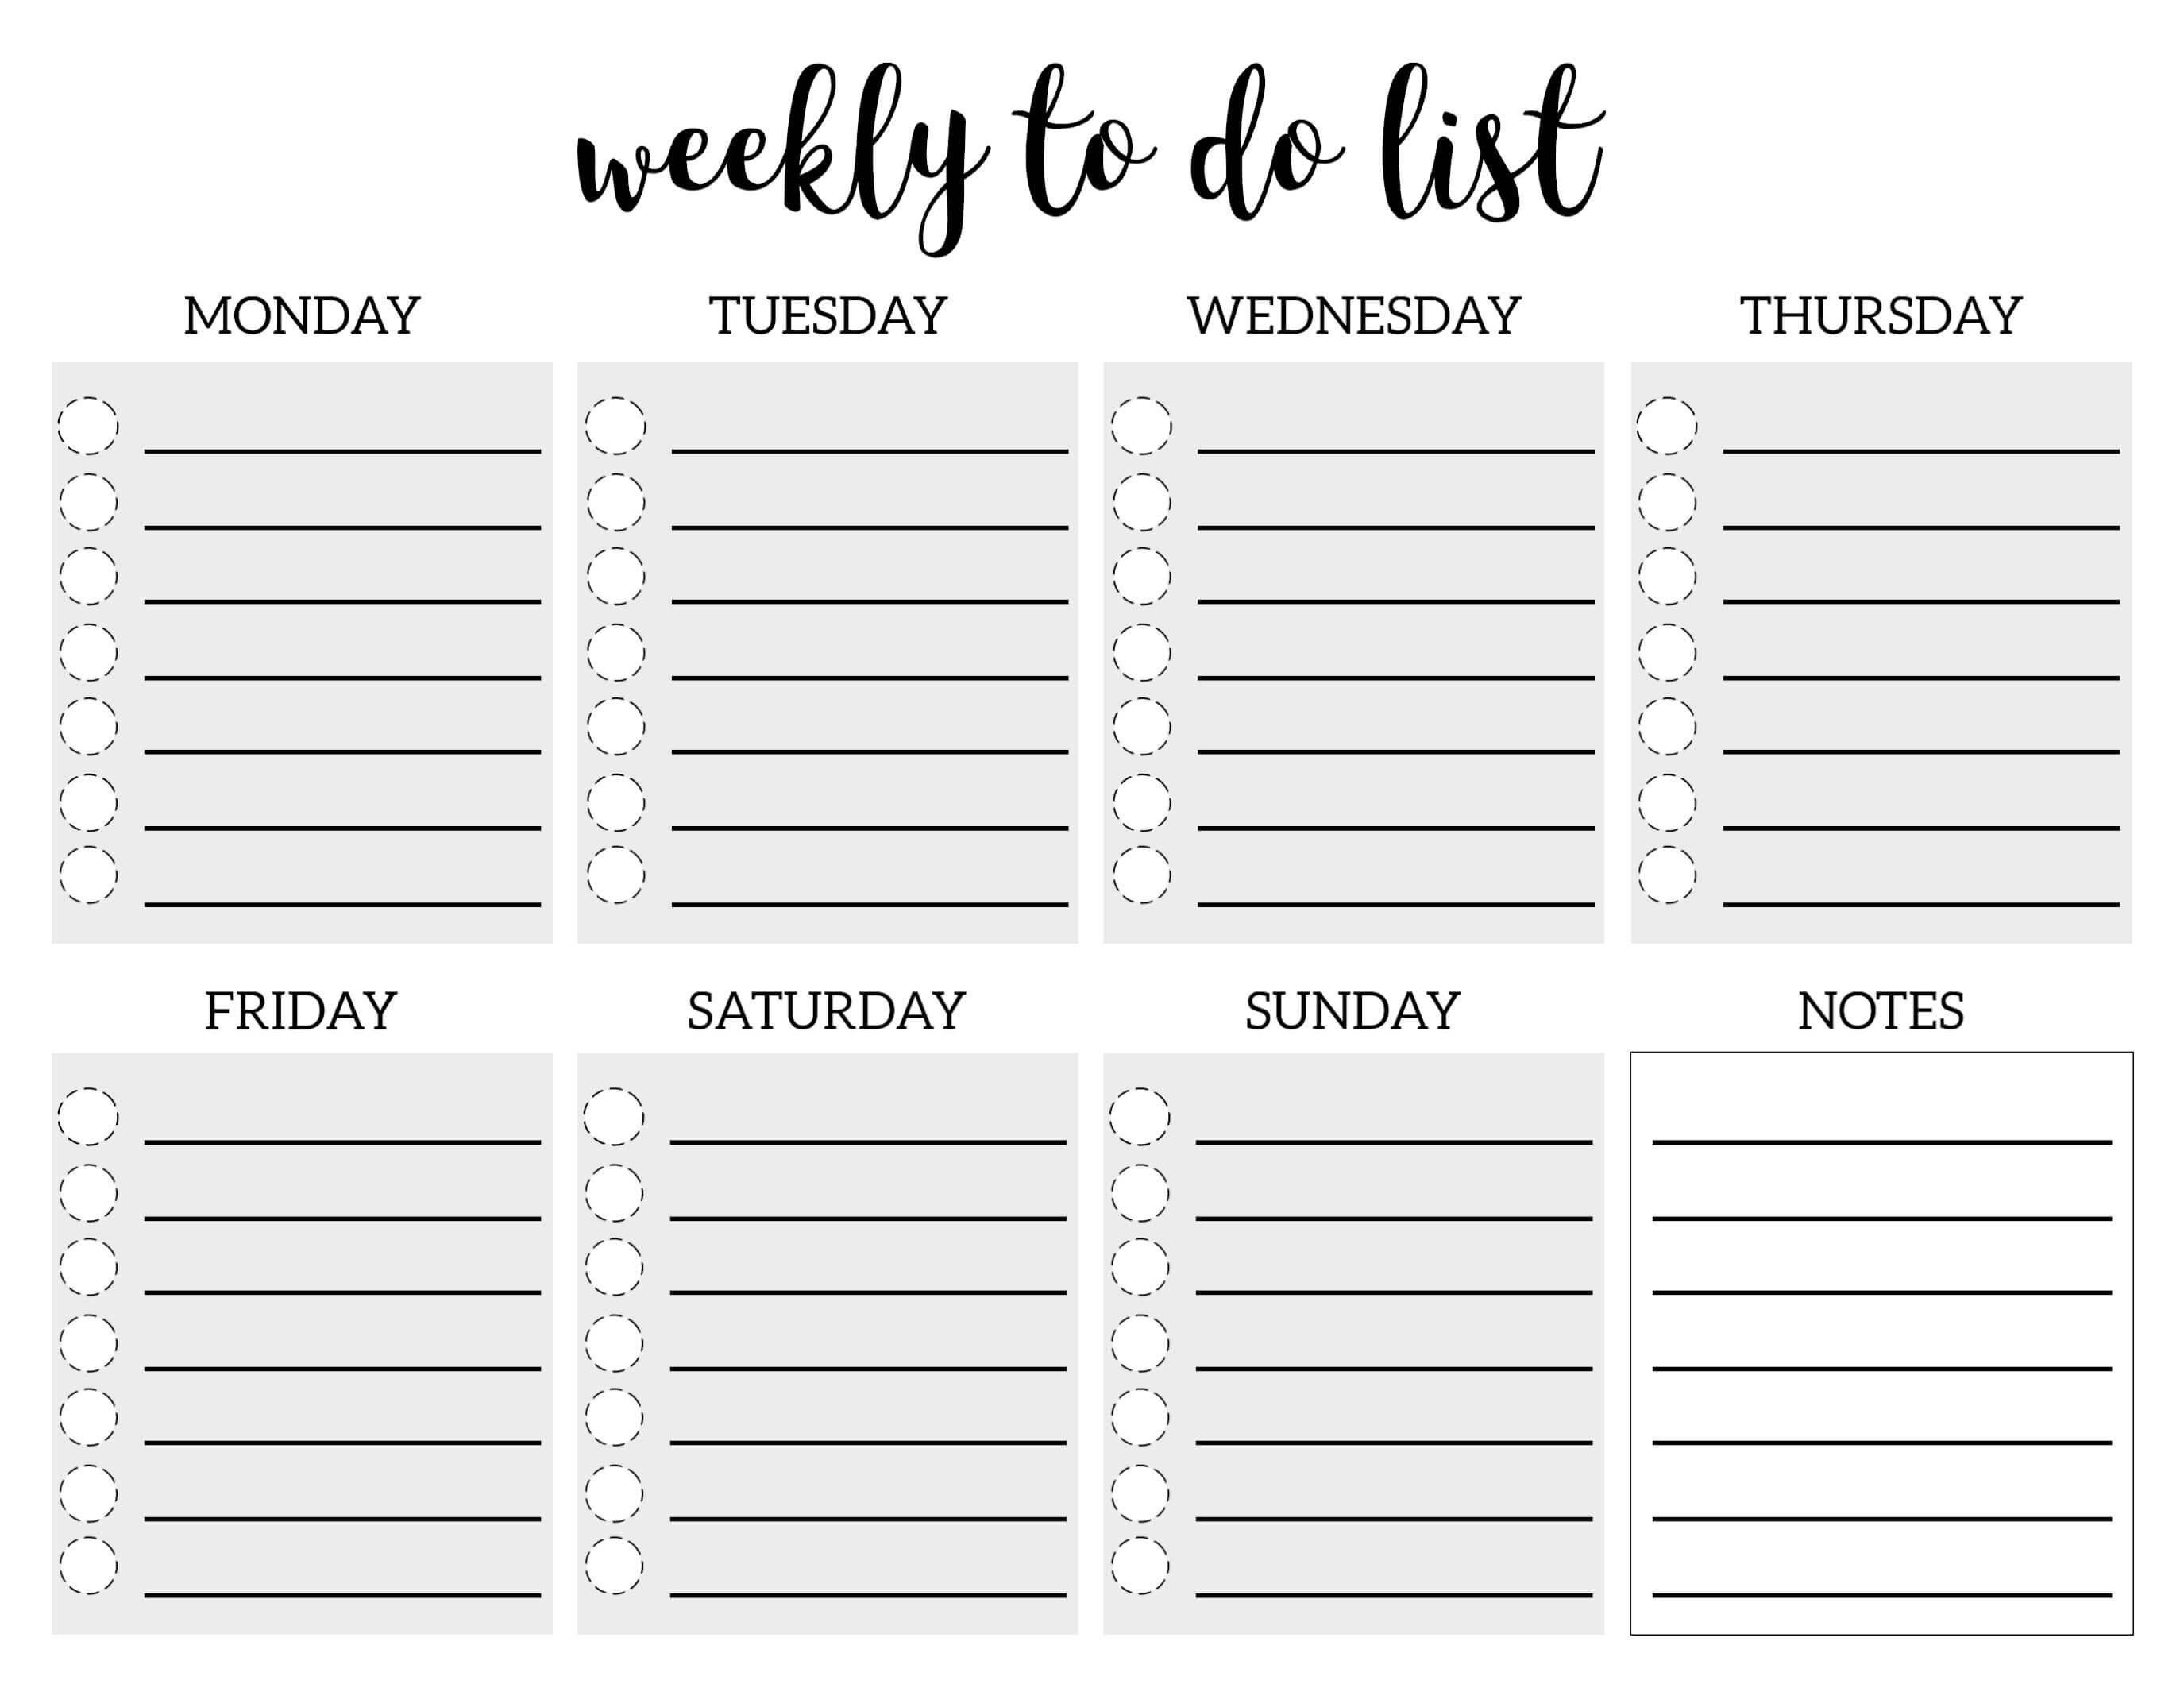 Weekly To Do List Printable Checklist Template Paper Trail Regarding Blank To Do List Template